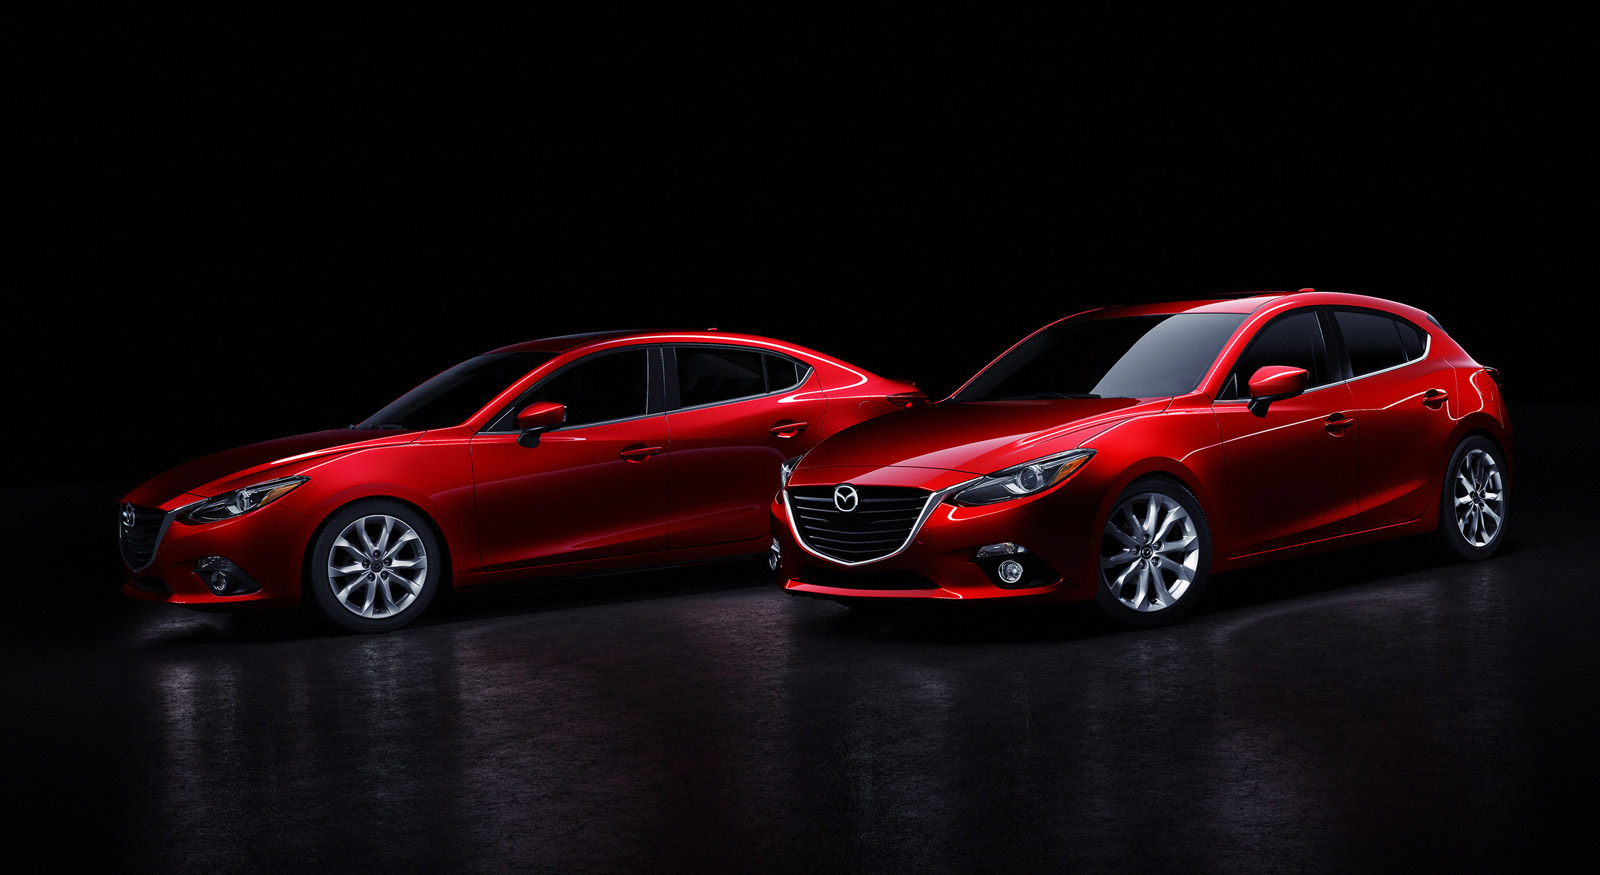 2014 Mazda 3 Japanese Talk Mycarforum Com